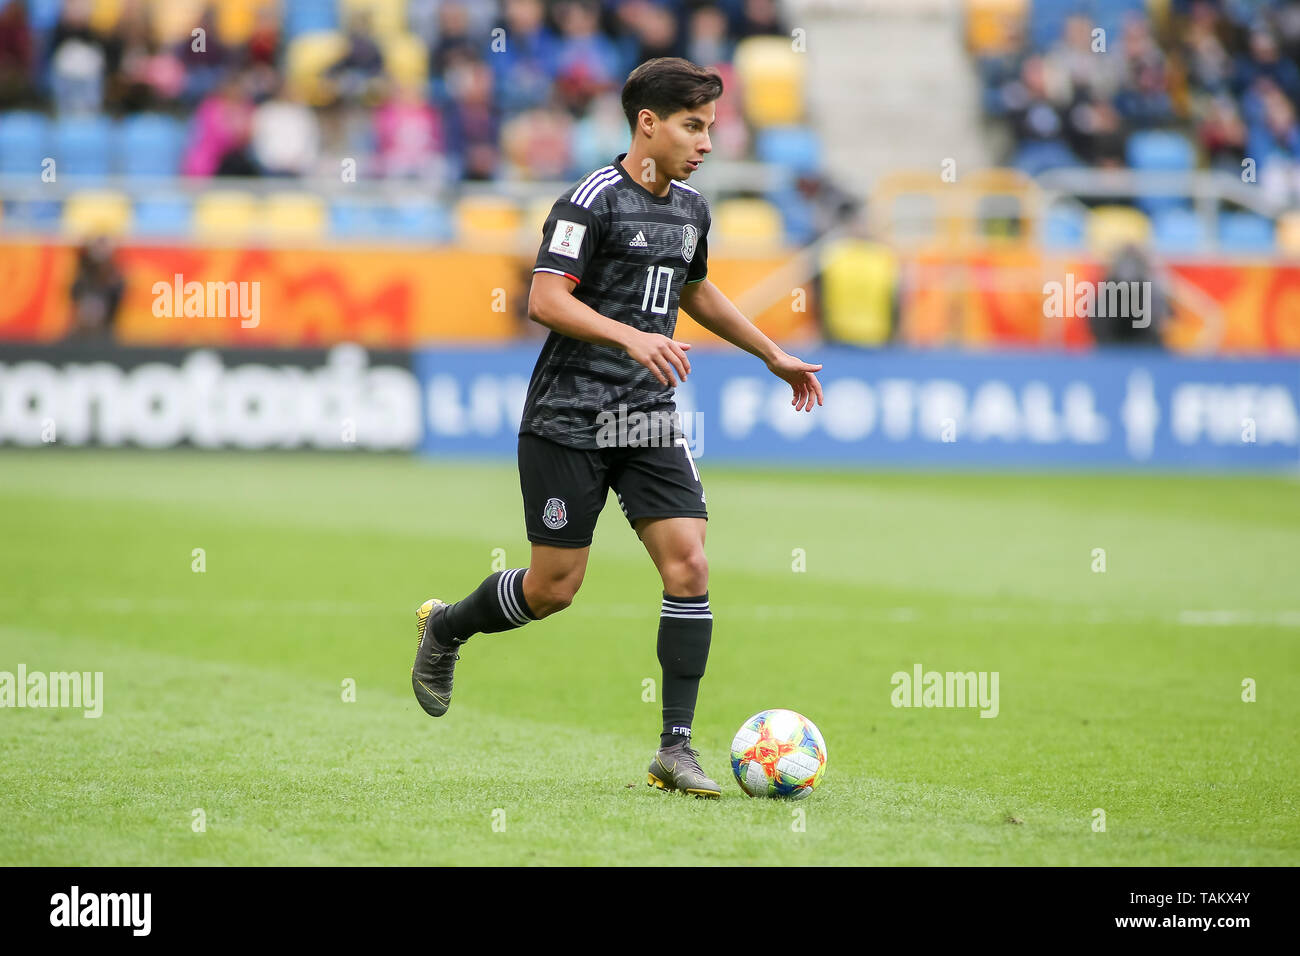 Gdynia Stadium, Gdynia, Poland - 26th May, 2019: Diego Lainez from Mexico seen in action during FIFA U-20 World Cup match between Mexico and Japan (GROUP B) in Gdynia. (Final score; Mexico 0:3 Japan) - Stock Image